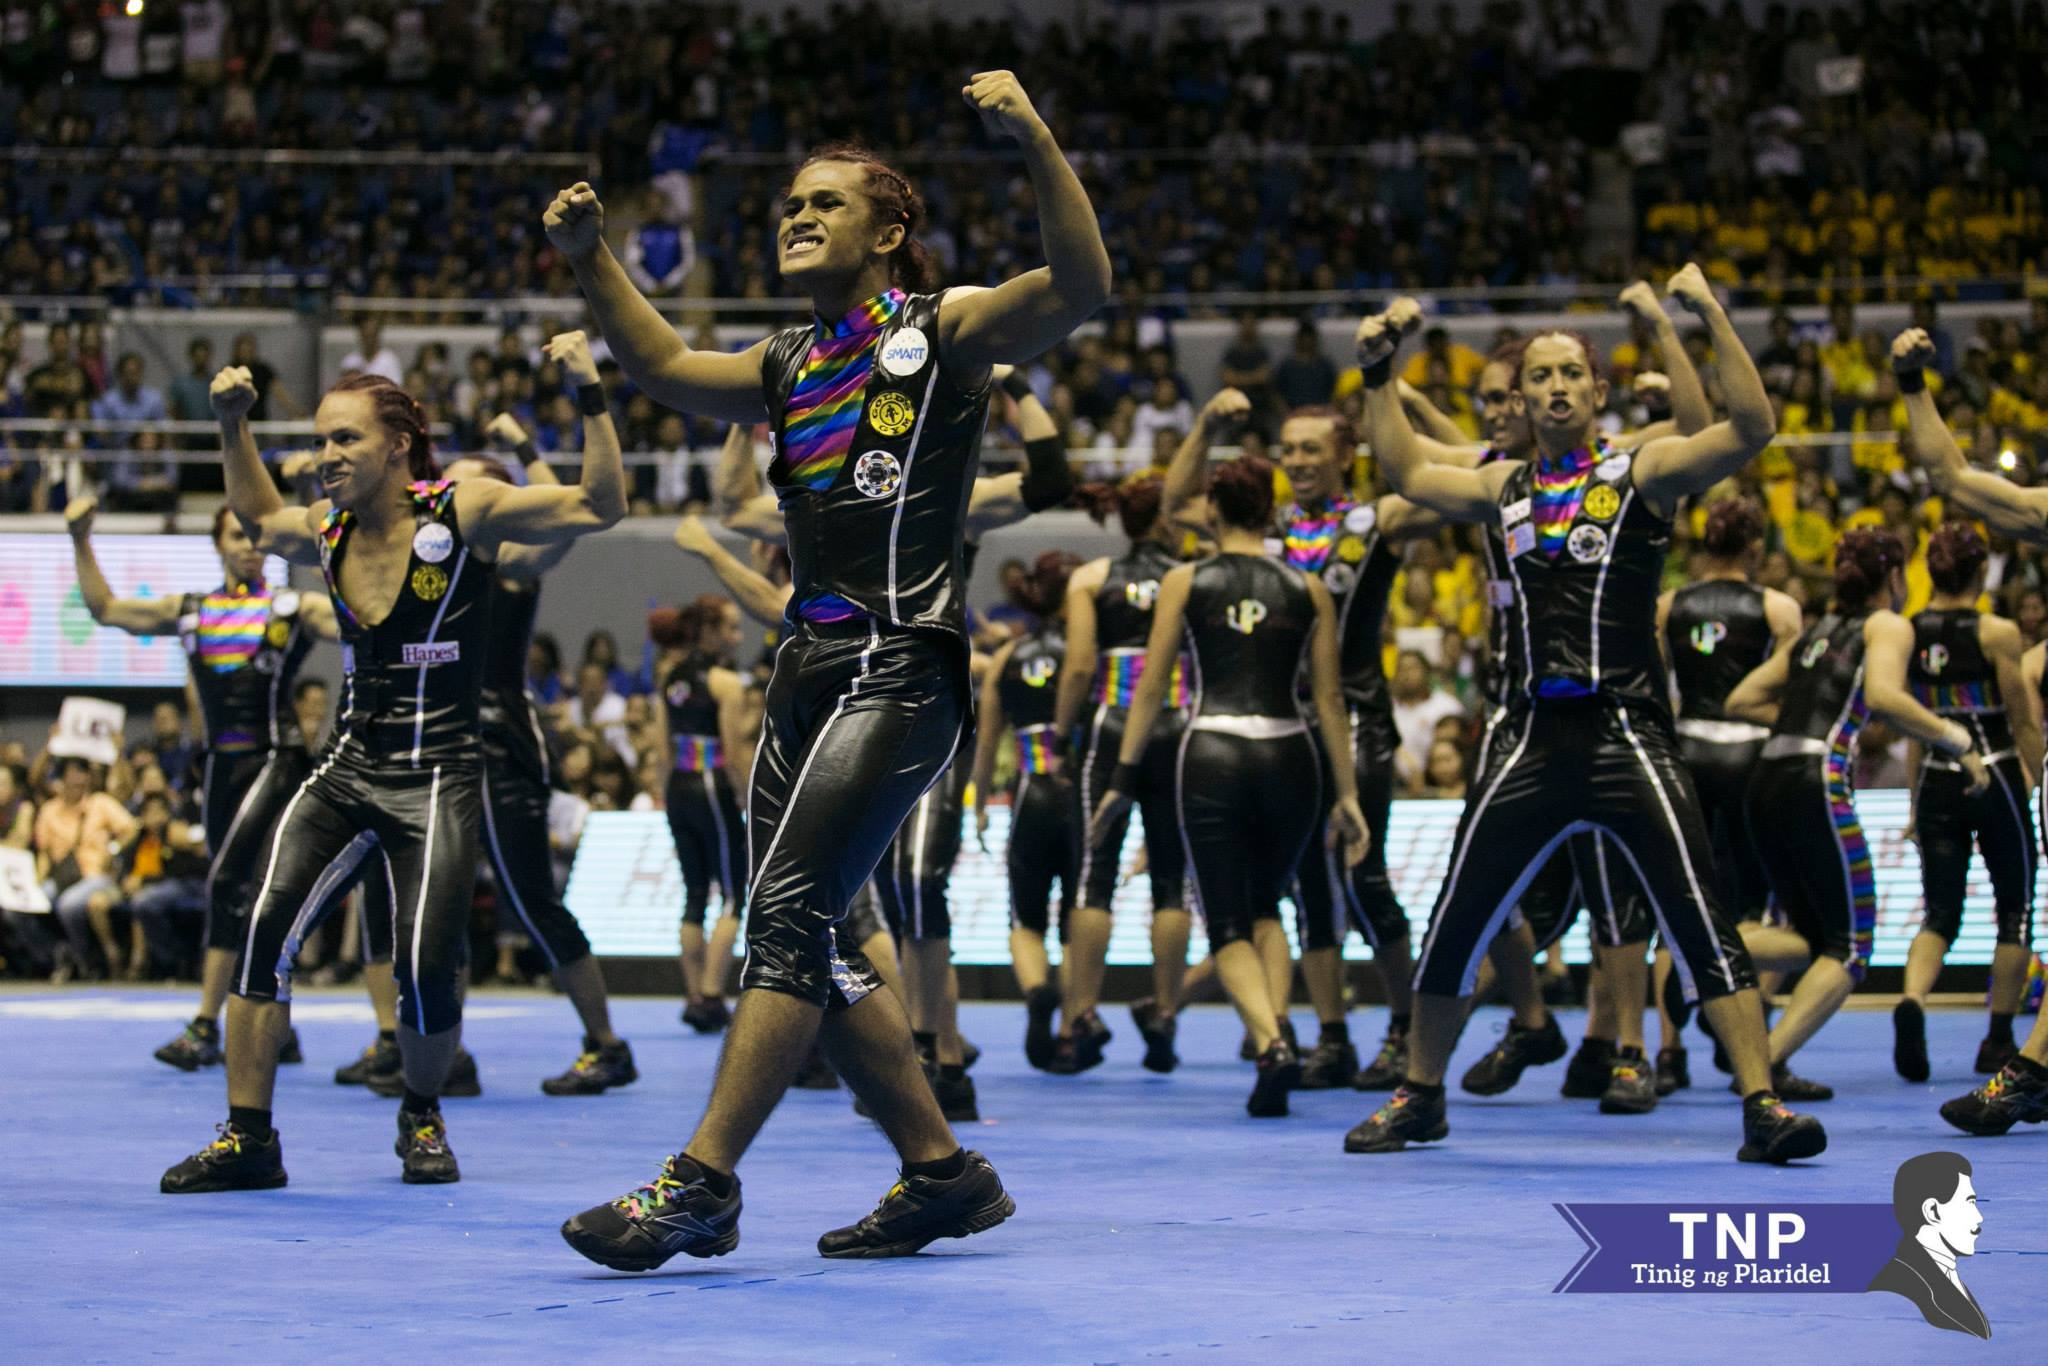 UP Pep Squad 2014 Equality LGBT Cheerdance Competition UAAP Season 77 78 File Photo by Patricia Nabong